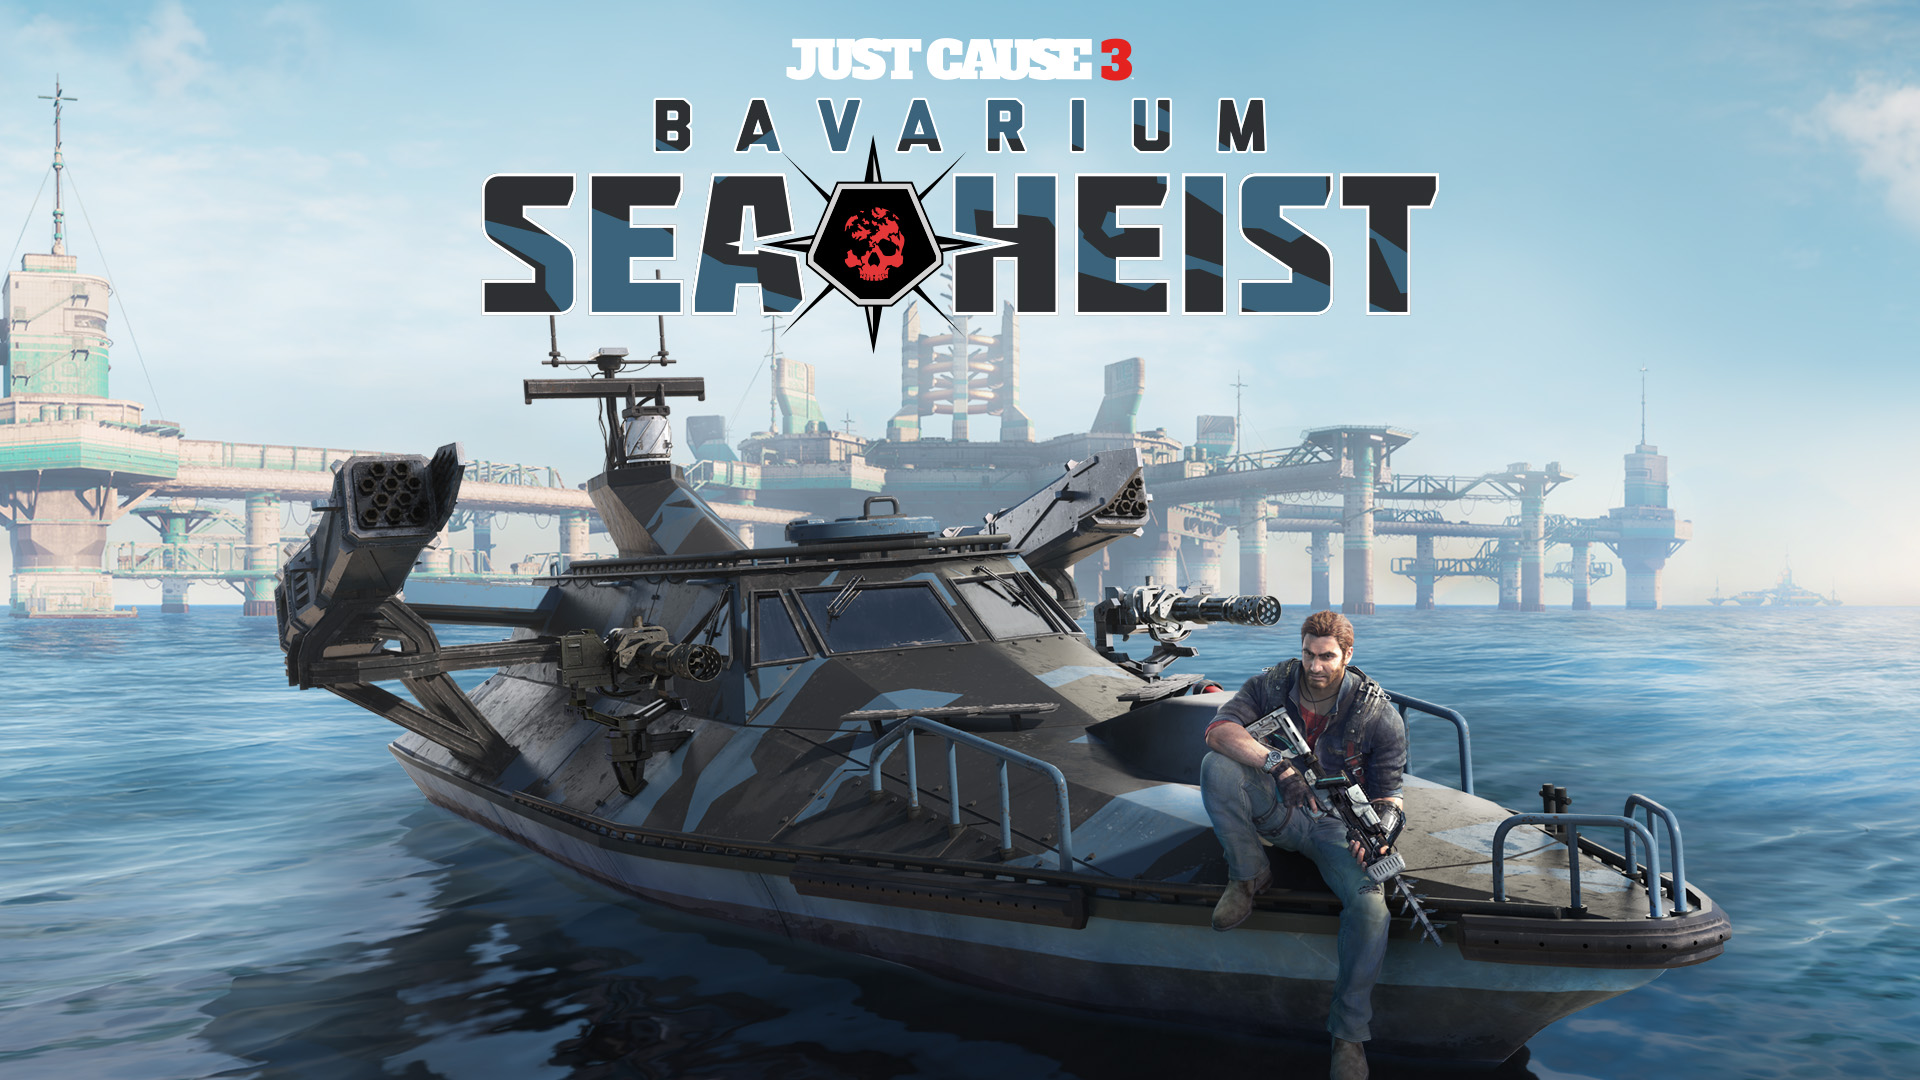 just cause 3 bavarium sea heist (1)